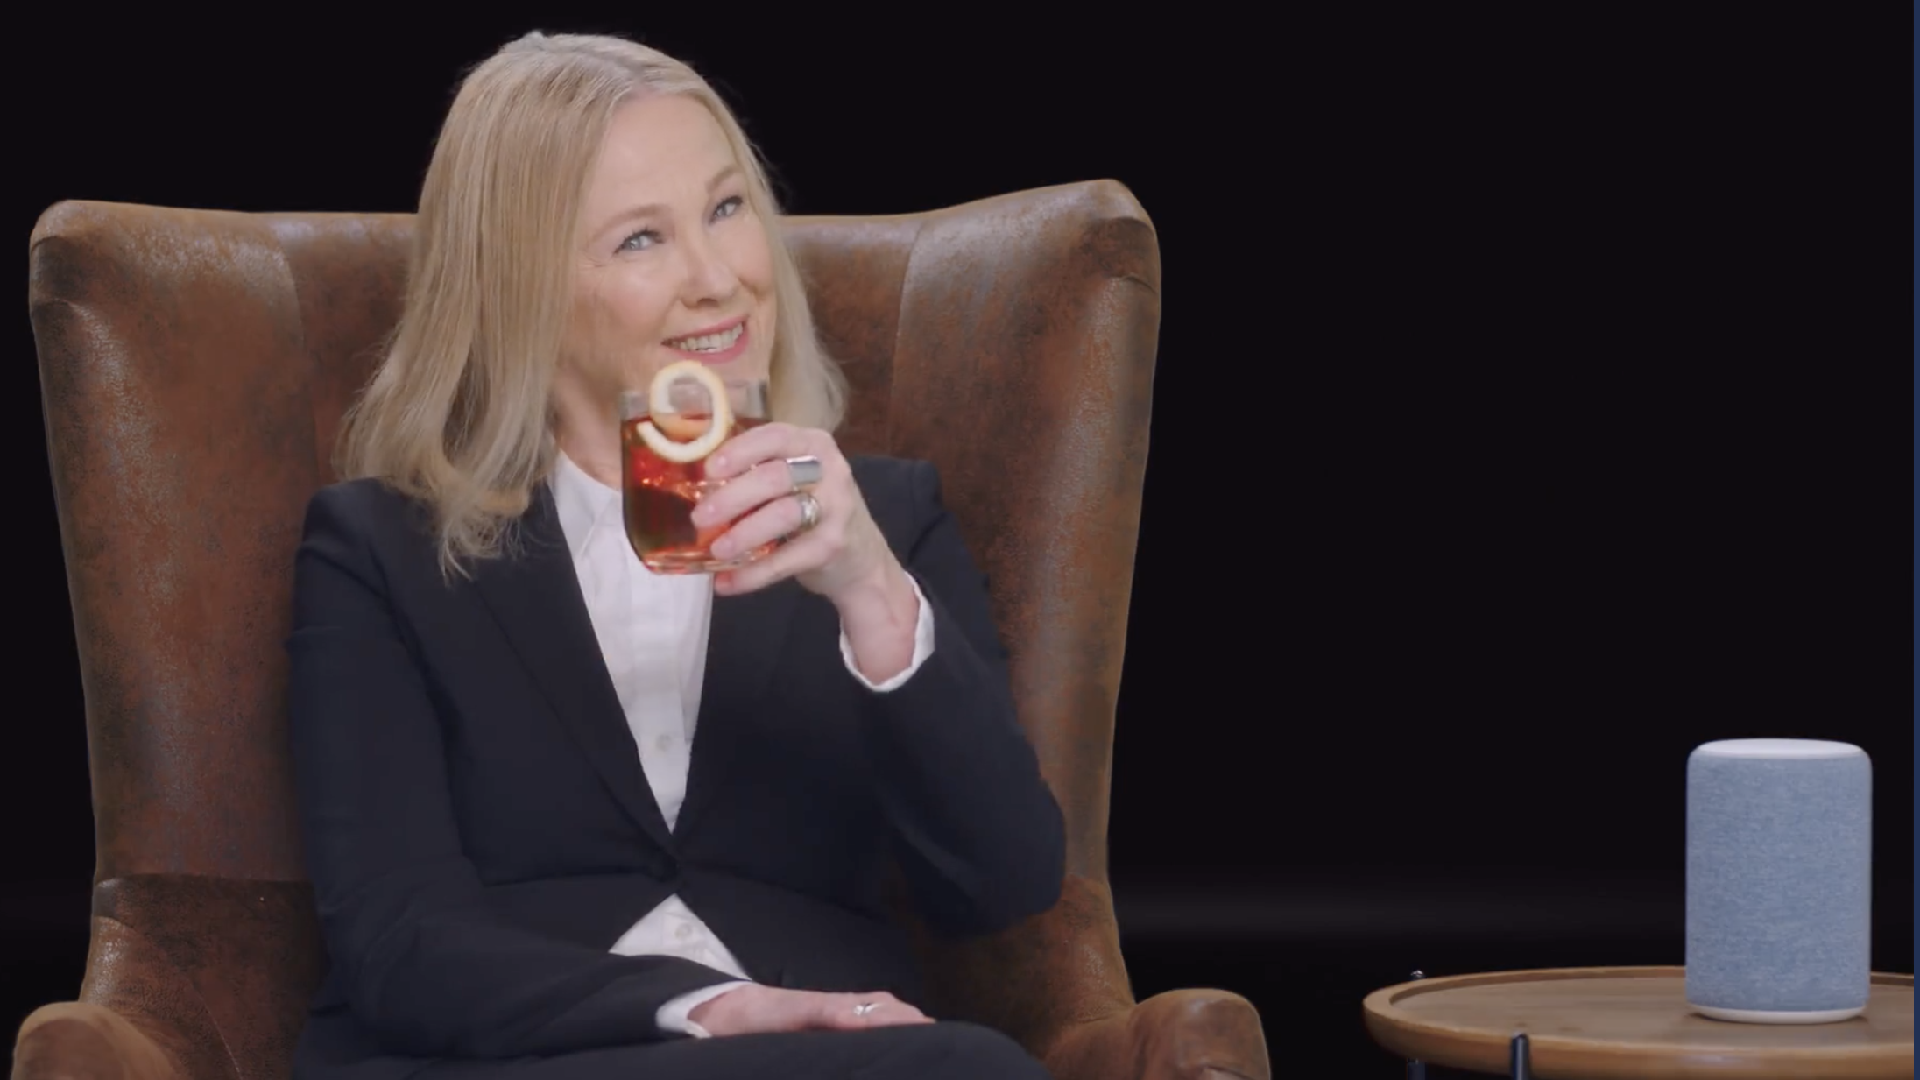 Schitt's Creek star Catherine O'Hara emceed Amazon's NewFronts debut.